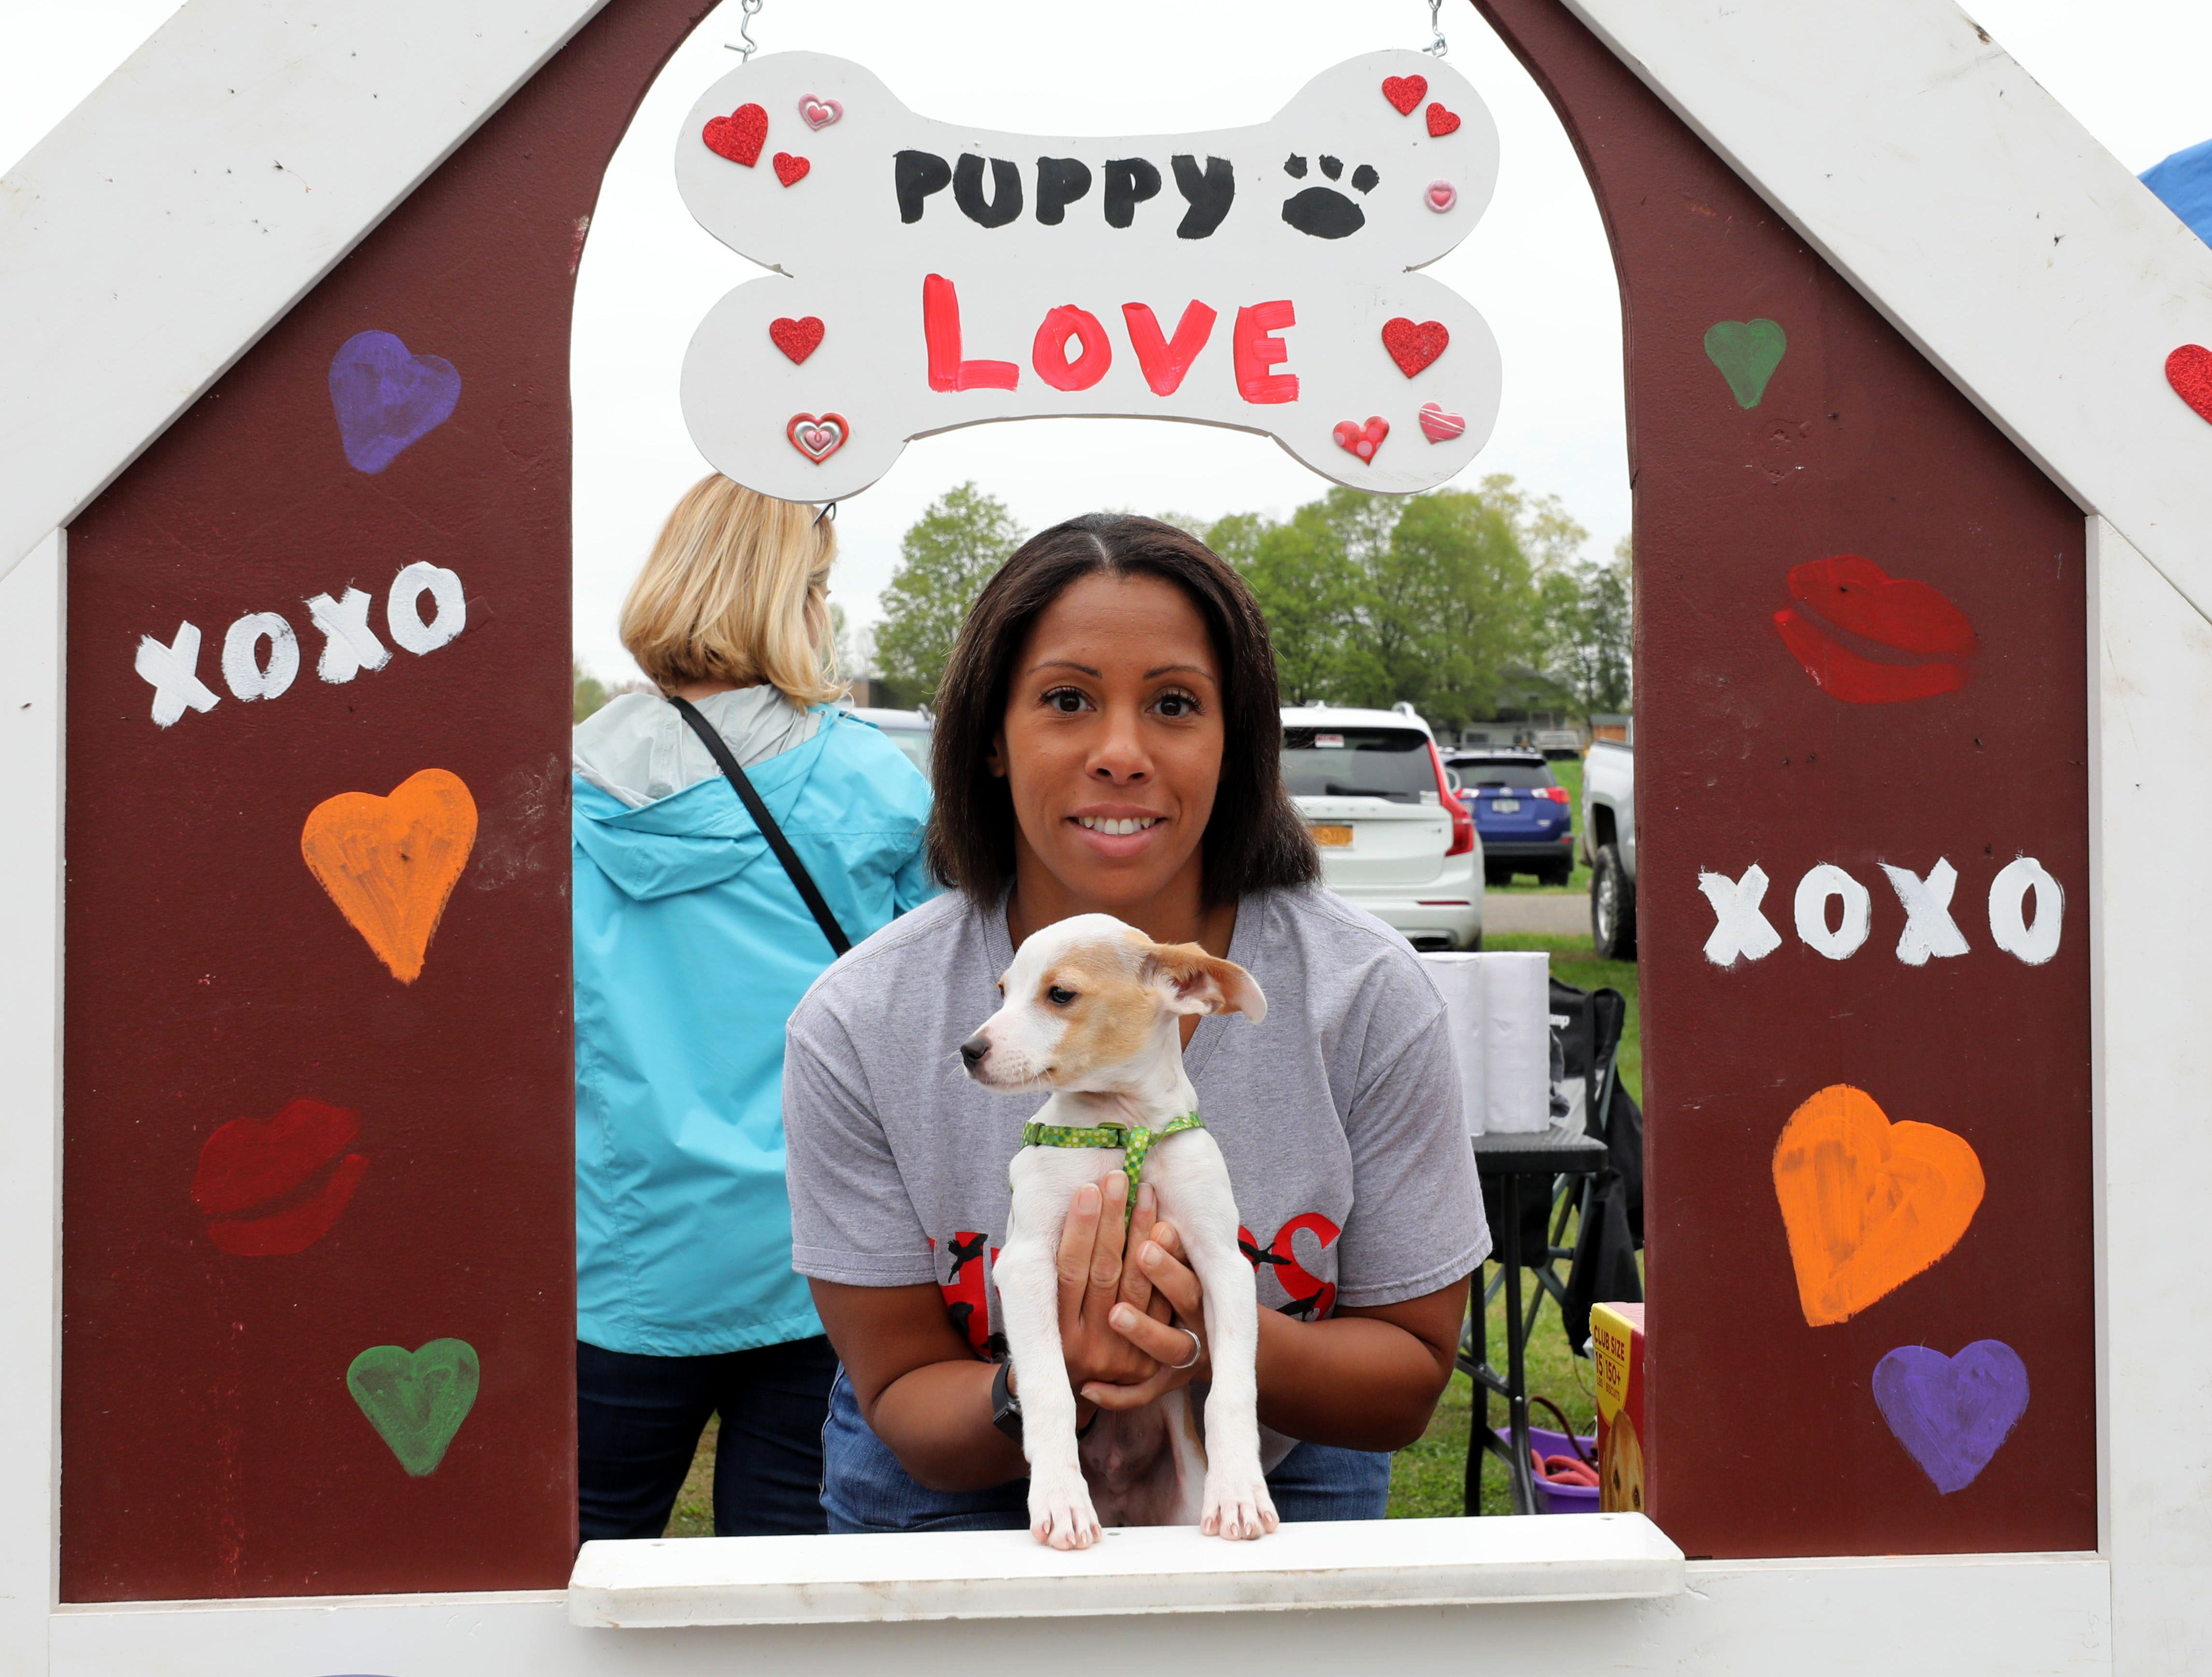 Marjorie Coon is pictured with 3-month old Rufus at the Hudson Valley Animal Rescue and Sanctuary booth during the K104.7 Cupcake Festival at the Stormville Airport, May 4, 2019.